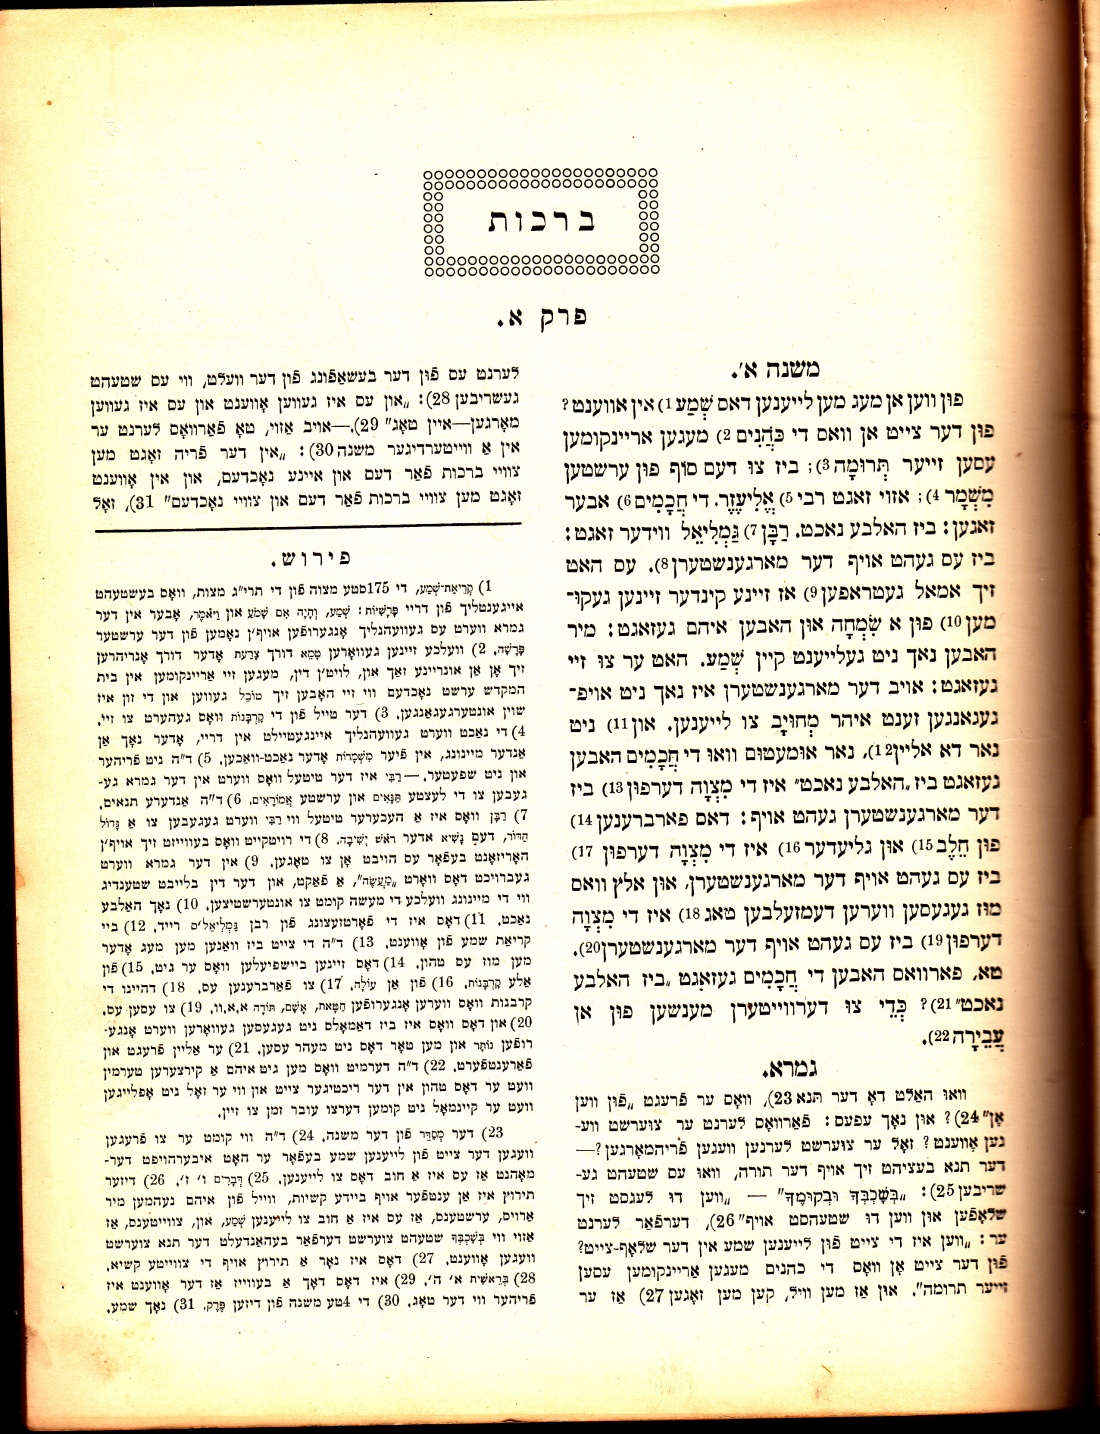 6a Talmud Yiddish_0004